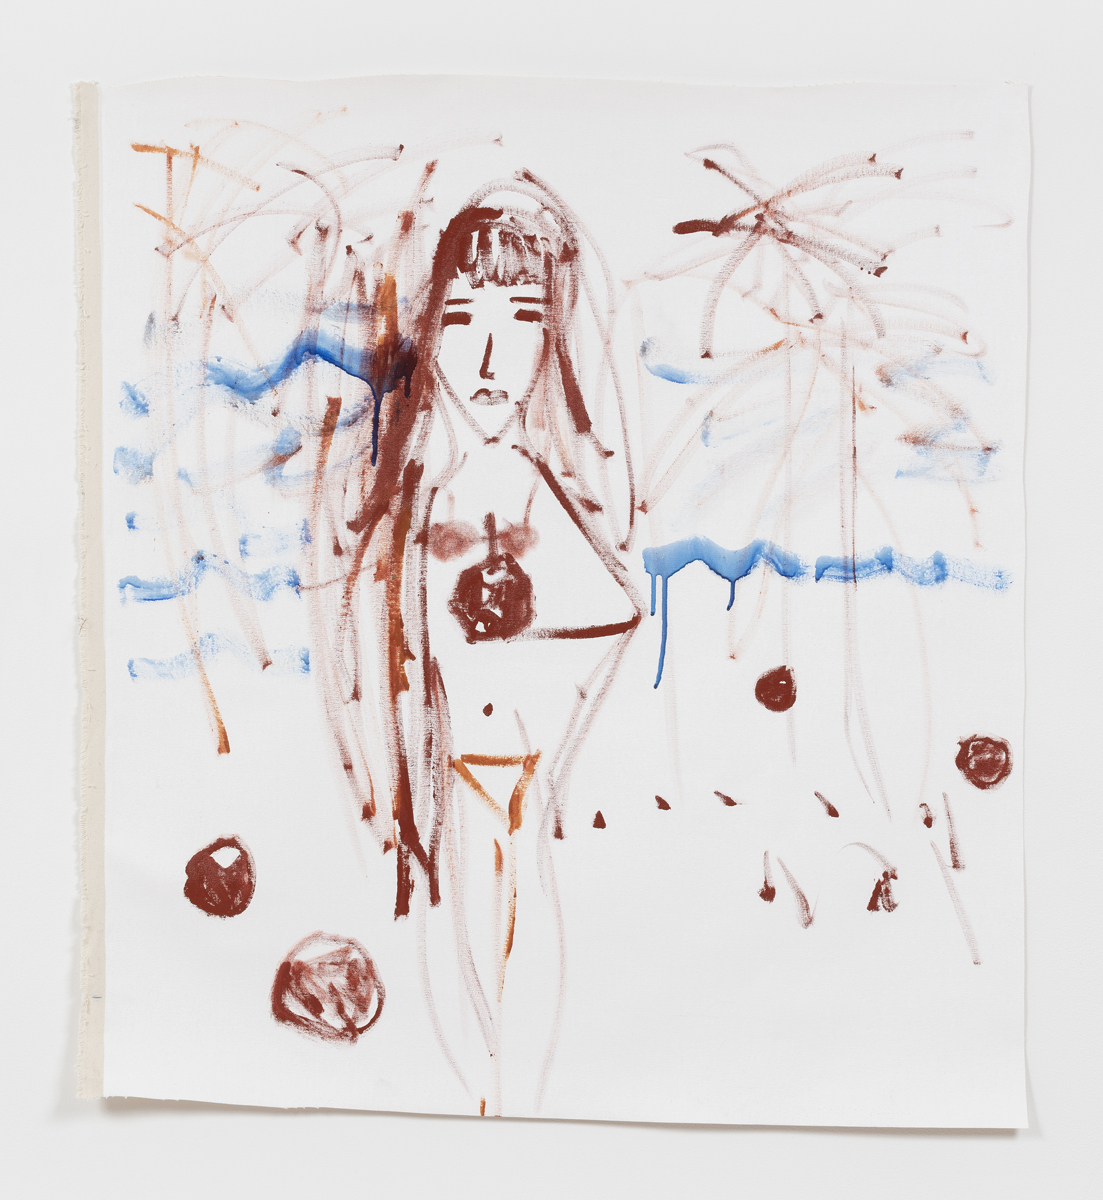 Trevor_Shimizu__Untitled_coconut_2017_oil_on_canvas_41__37_inches_104.14__93.98_cm